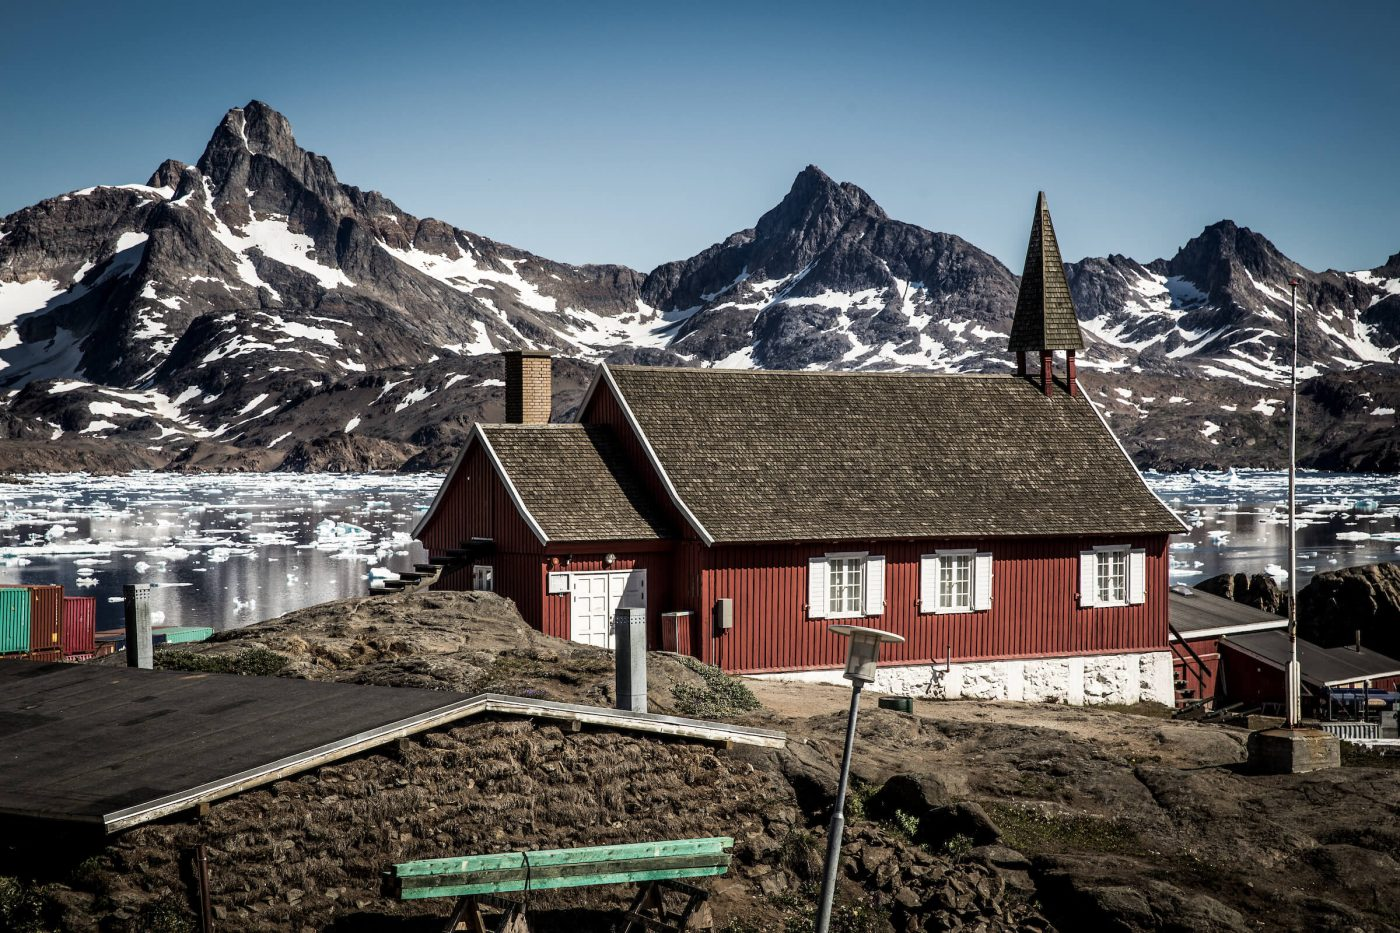 Tasiilaq Museum in the old church in Tasiillaq, East Greenland. Photo by Mads Pihl - Visit Greenland